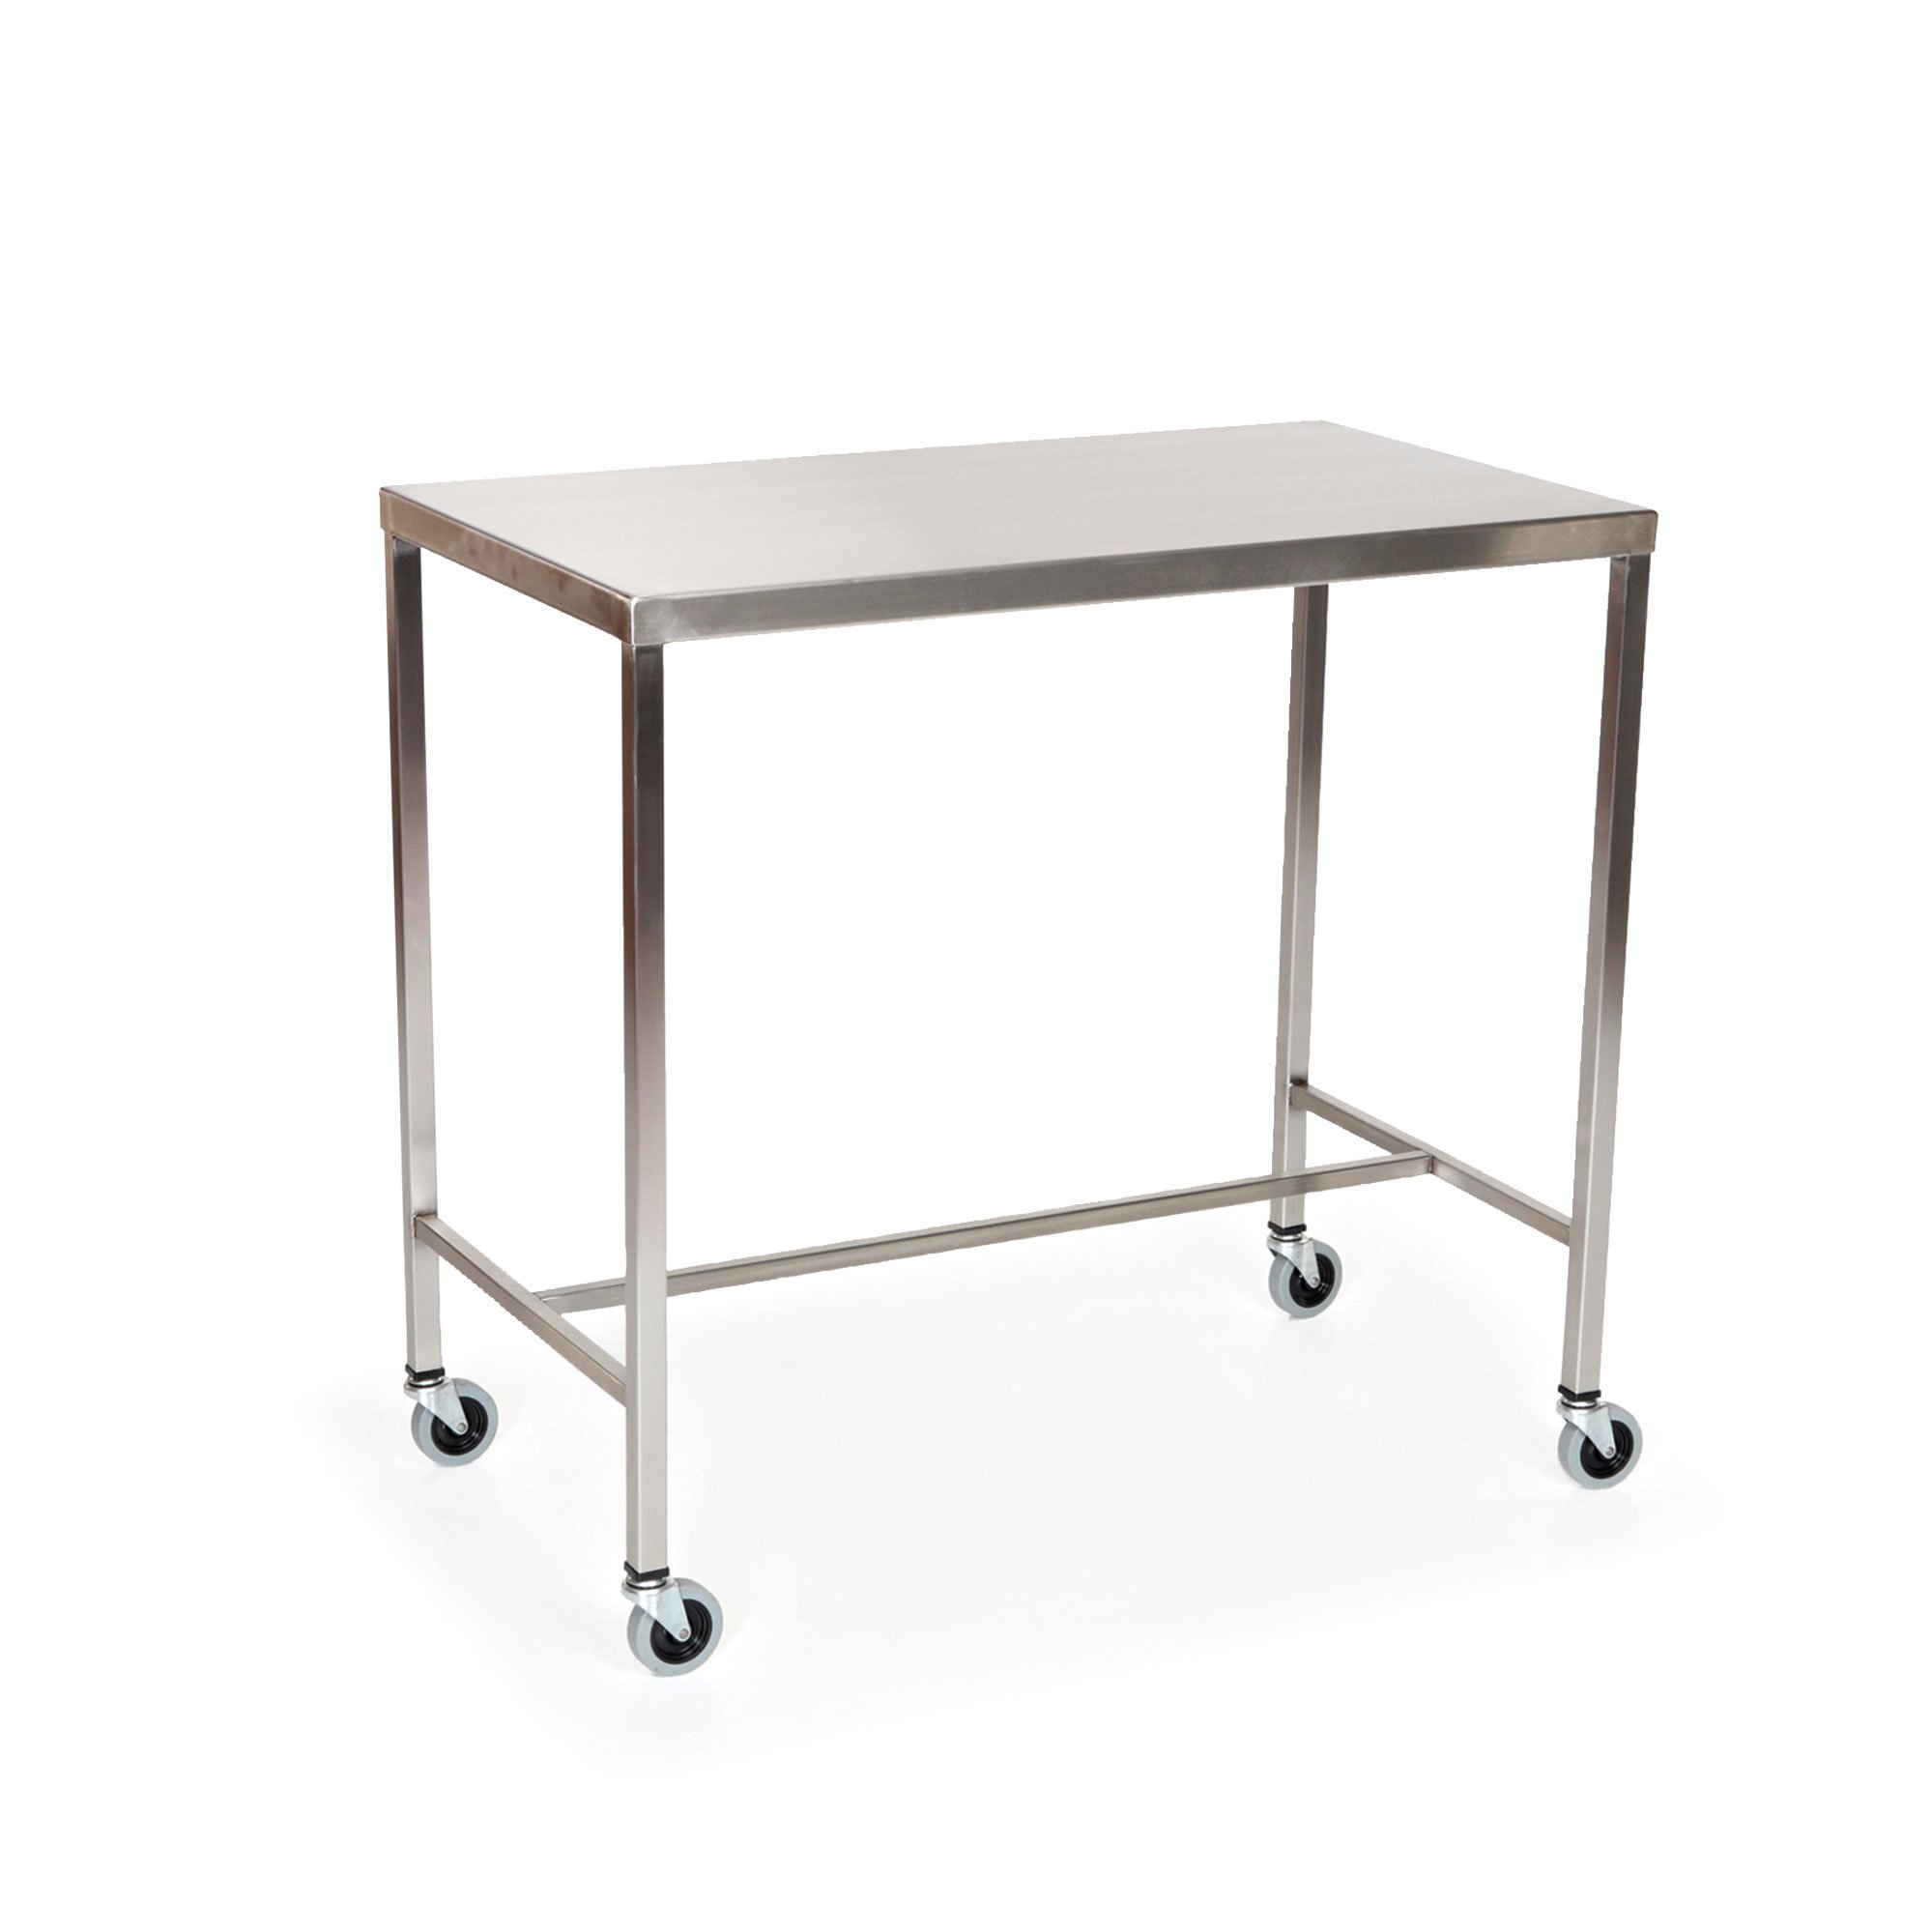 Stainless Steel Instrument Table with H-Brace 36''L x 20''W x 34''H by MID-CENTRAL MEDICAL (Image #1)